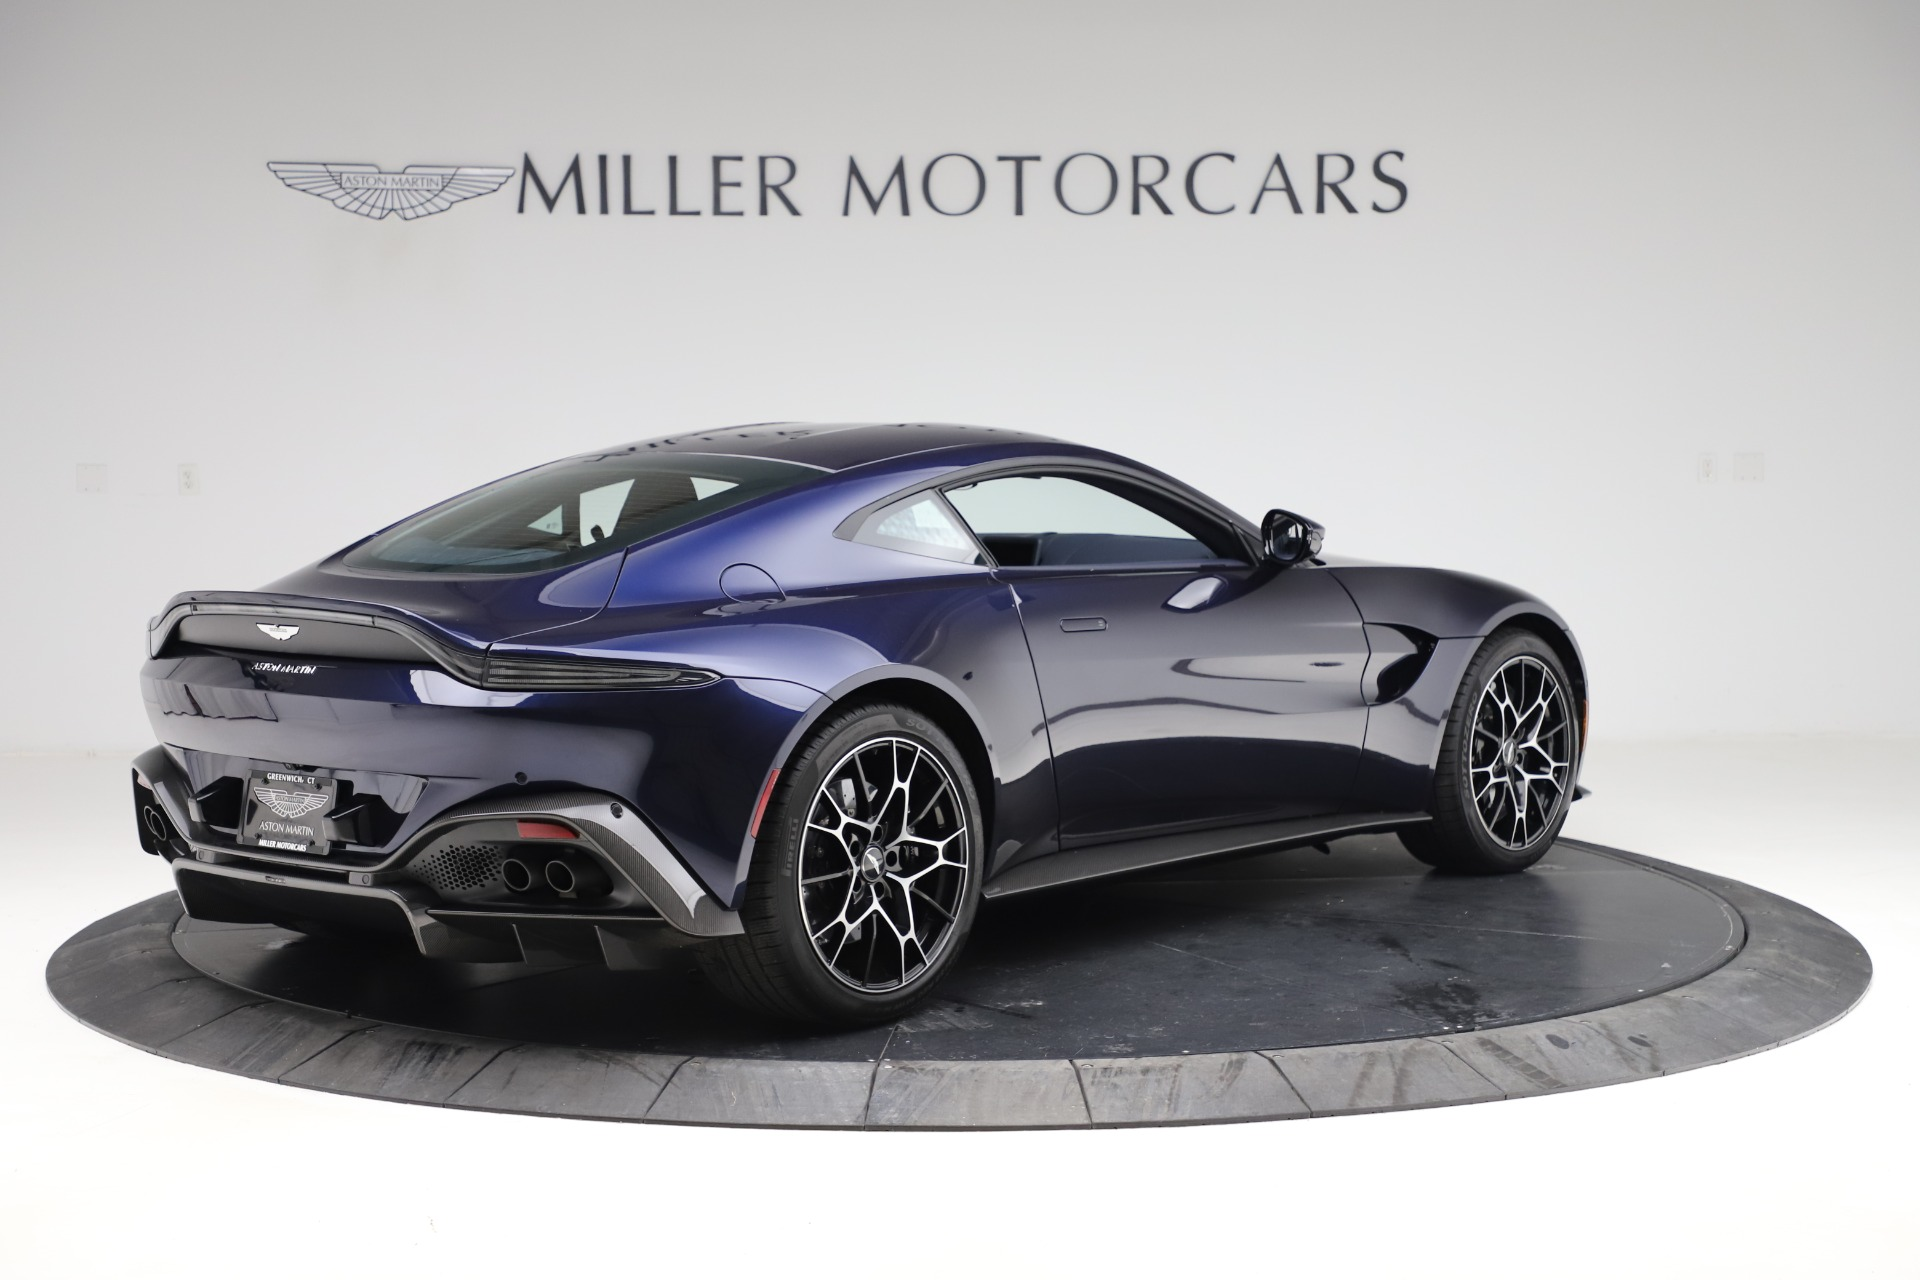 New 2020 Aston Martin Vantage Amr Coupe For Sale 191 181 Aston Martin Of Greenwich Stock A1450